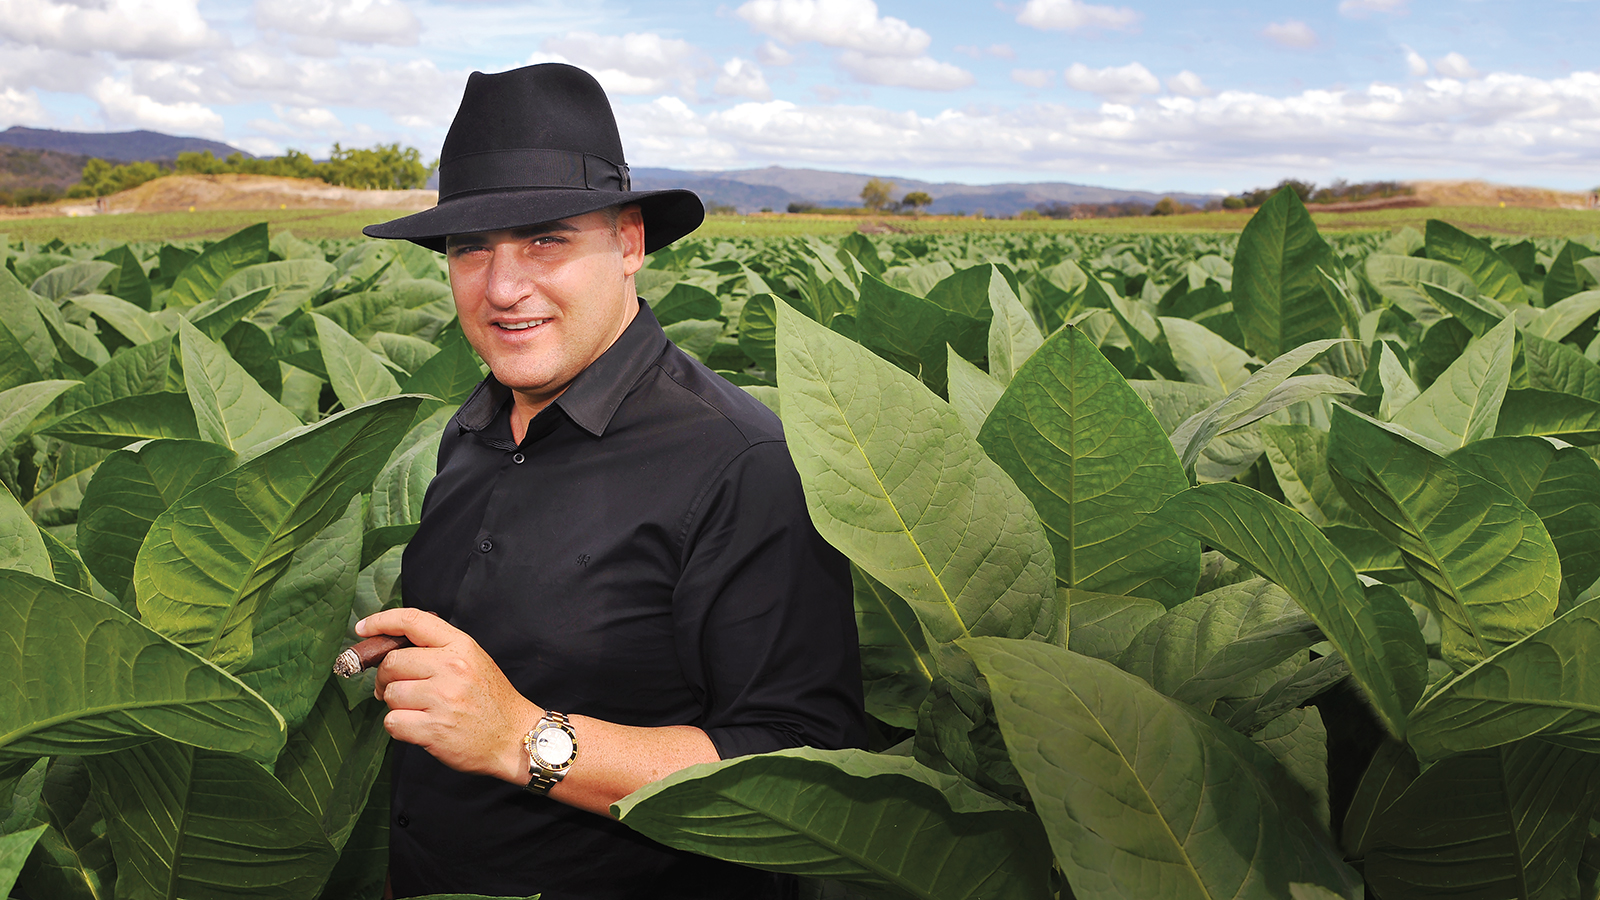 One of many tobacco fields in Estelí owned and farmed by A.J. Fernandez.